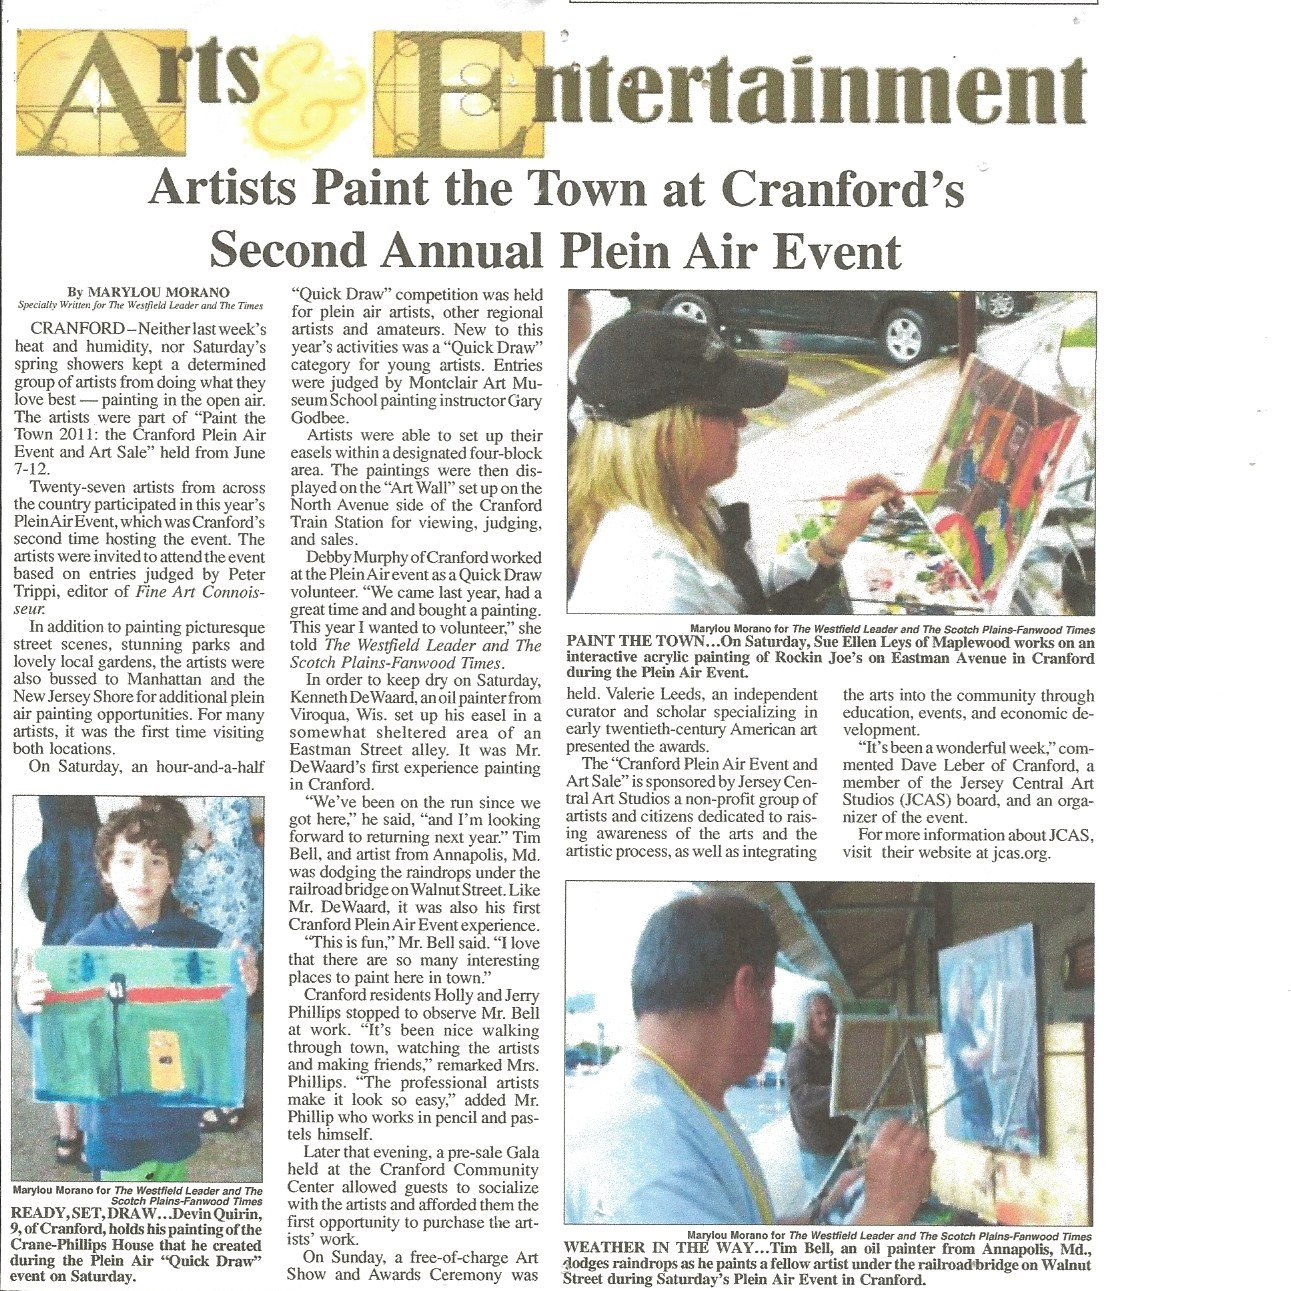 The artist pictured while painting in the Cranford event (at upper right).